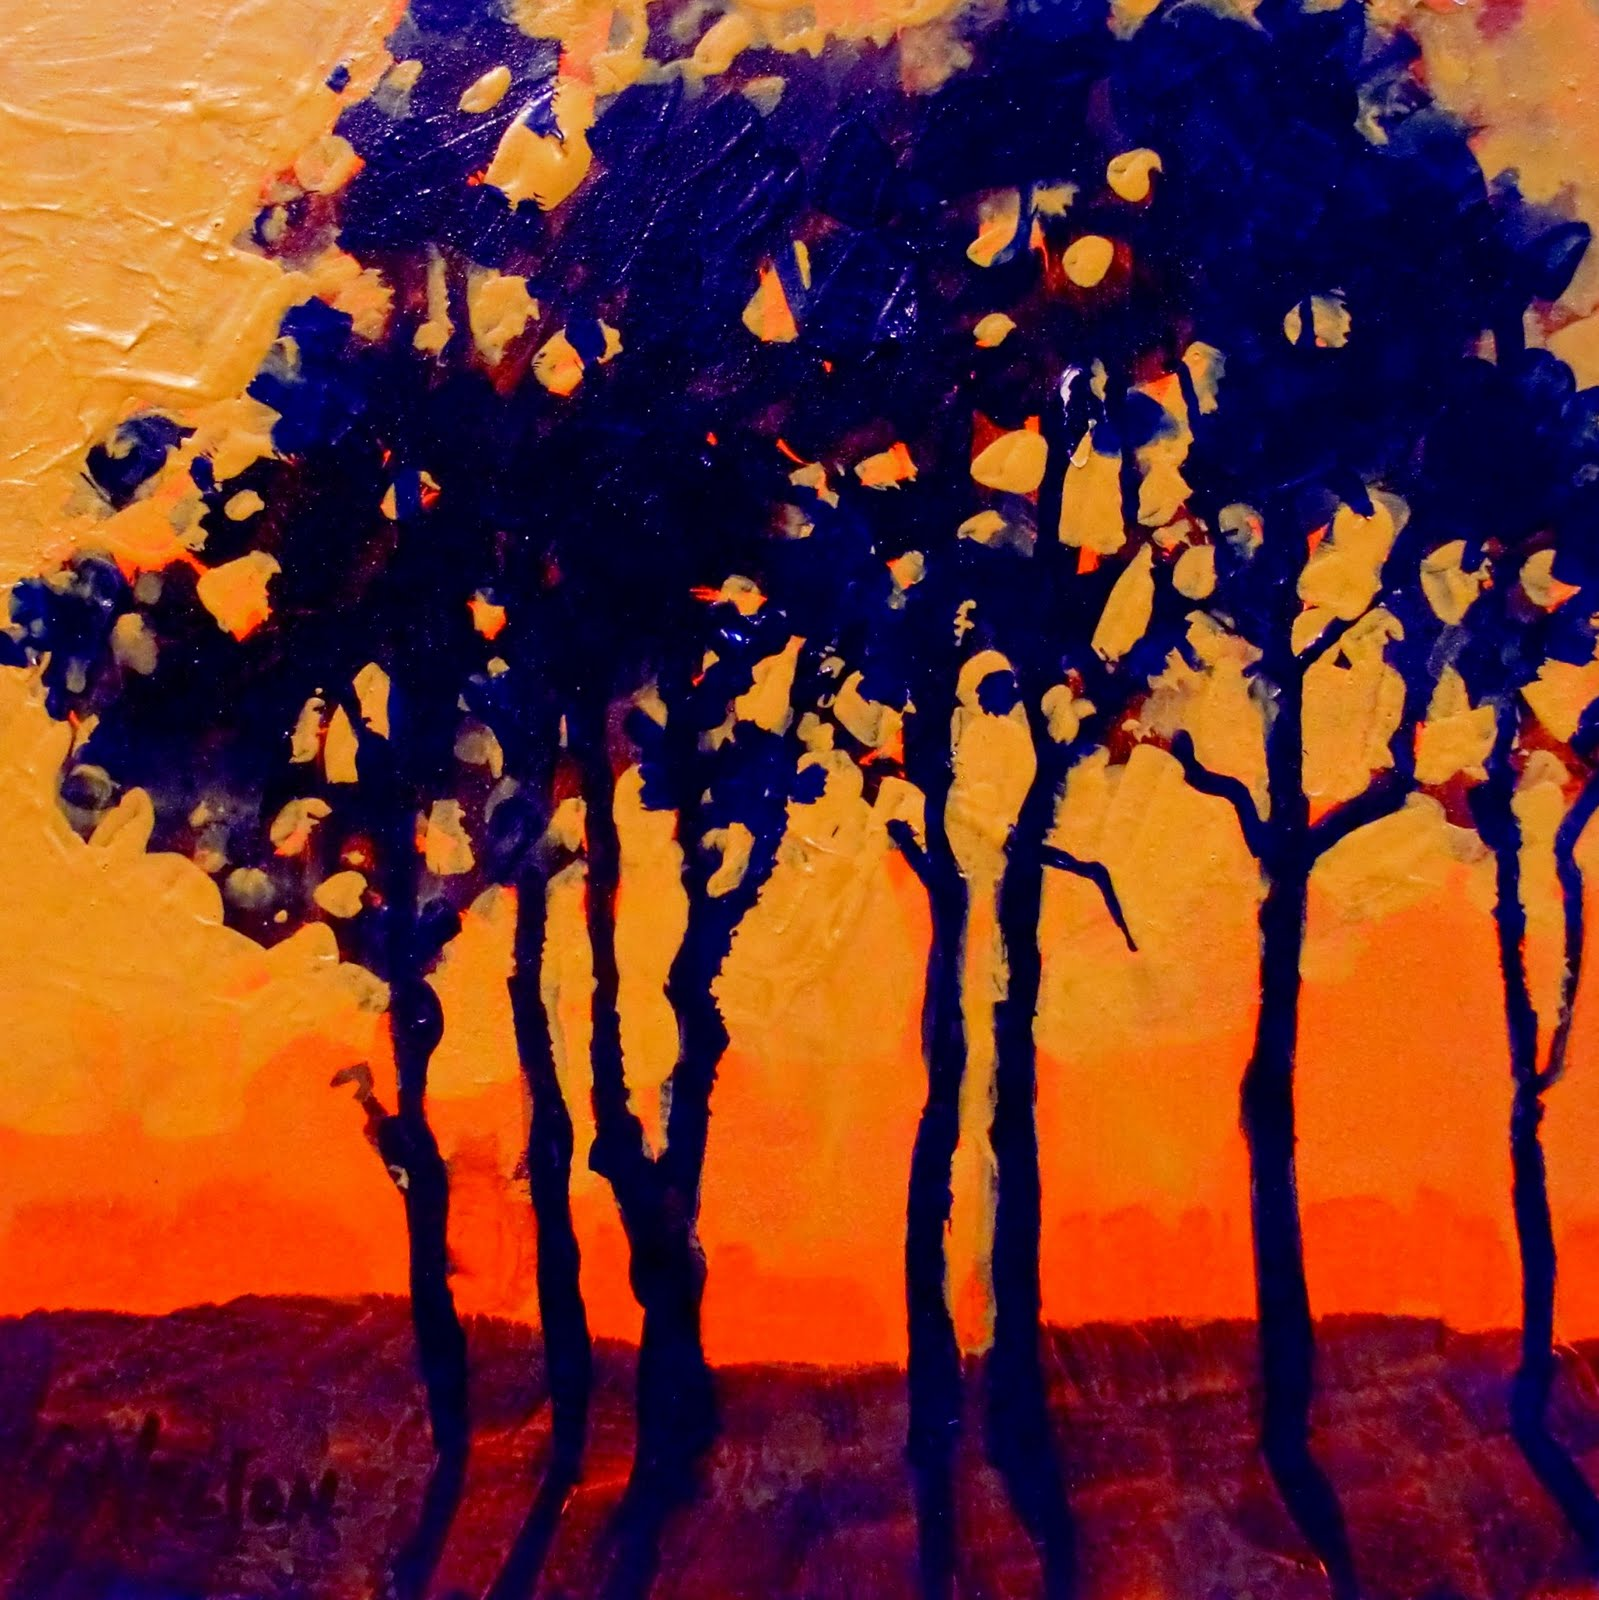 Daily Painters Abstract Gallery SUNSET TREES 11046 Painter